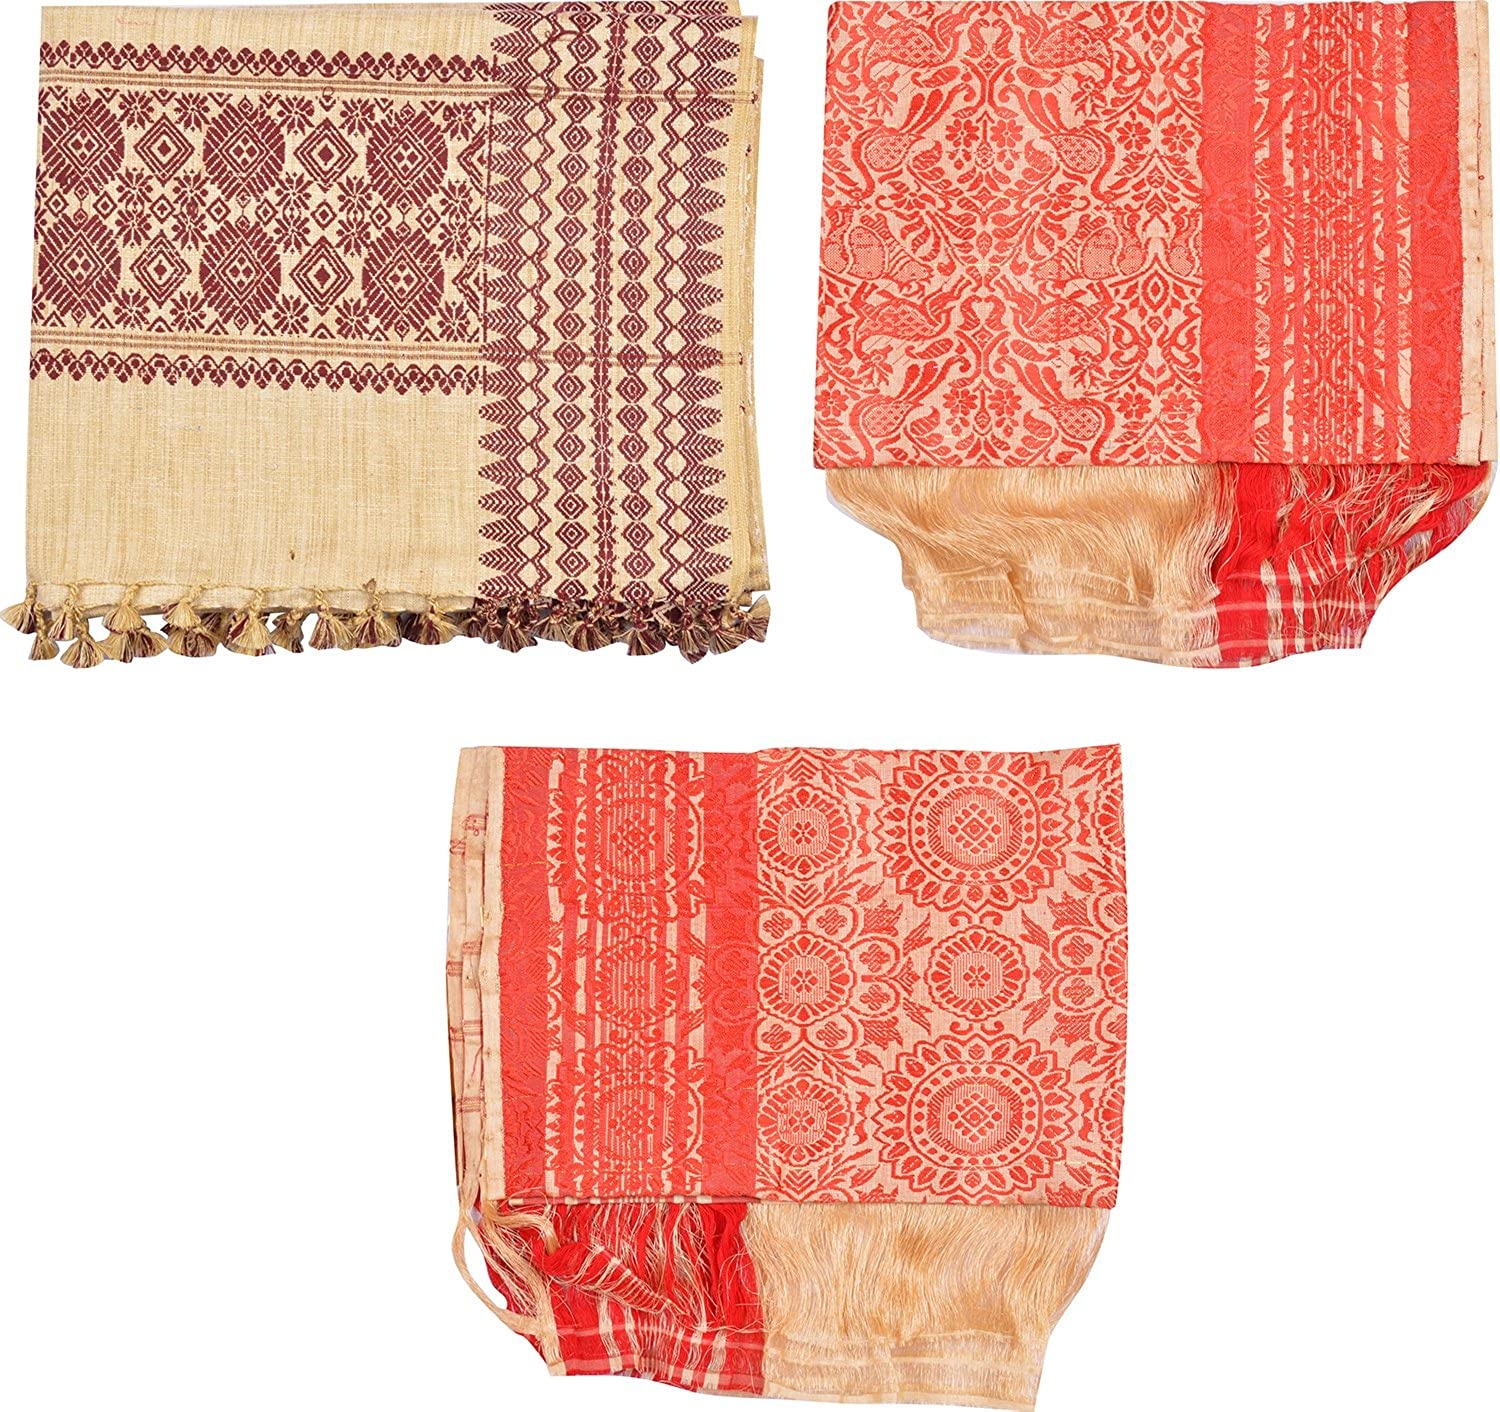 Uparam Muga Gamusa & Edi Shawl, Adult Scarf Combo of 3 (Multi-Coloured)